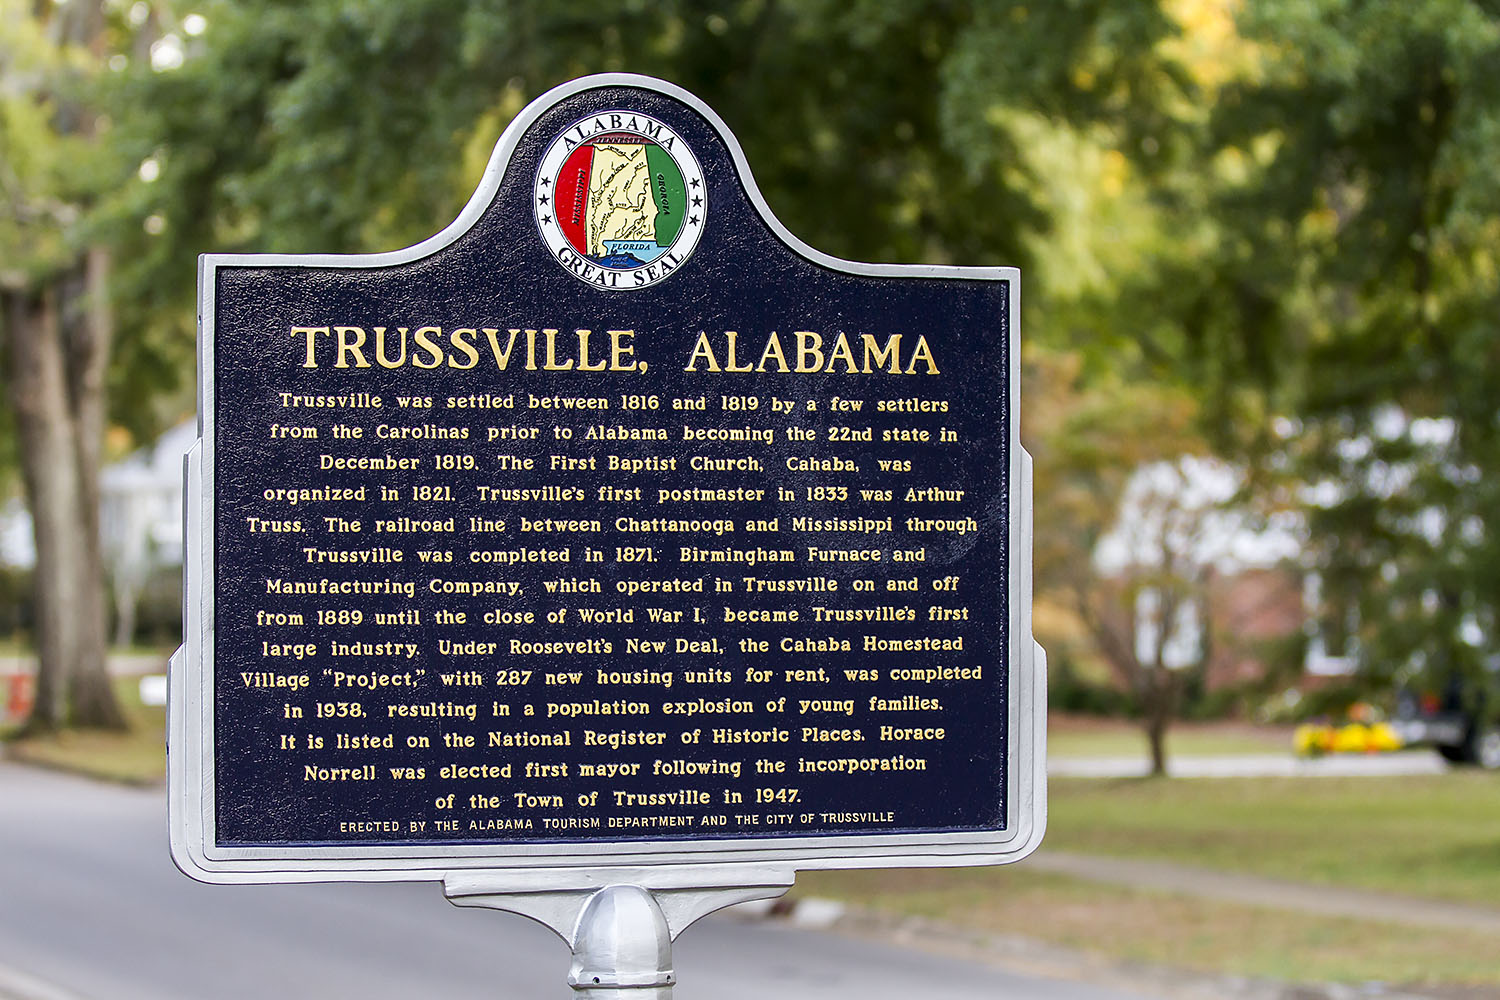 1 percent raise approved for city of Trussville employees